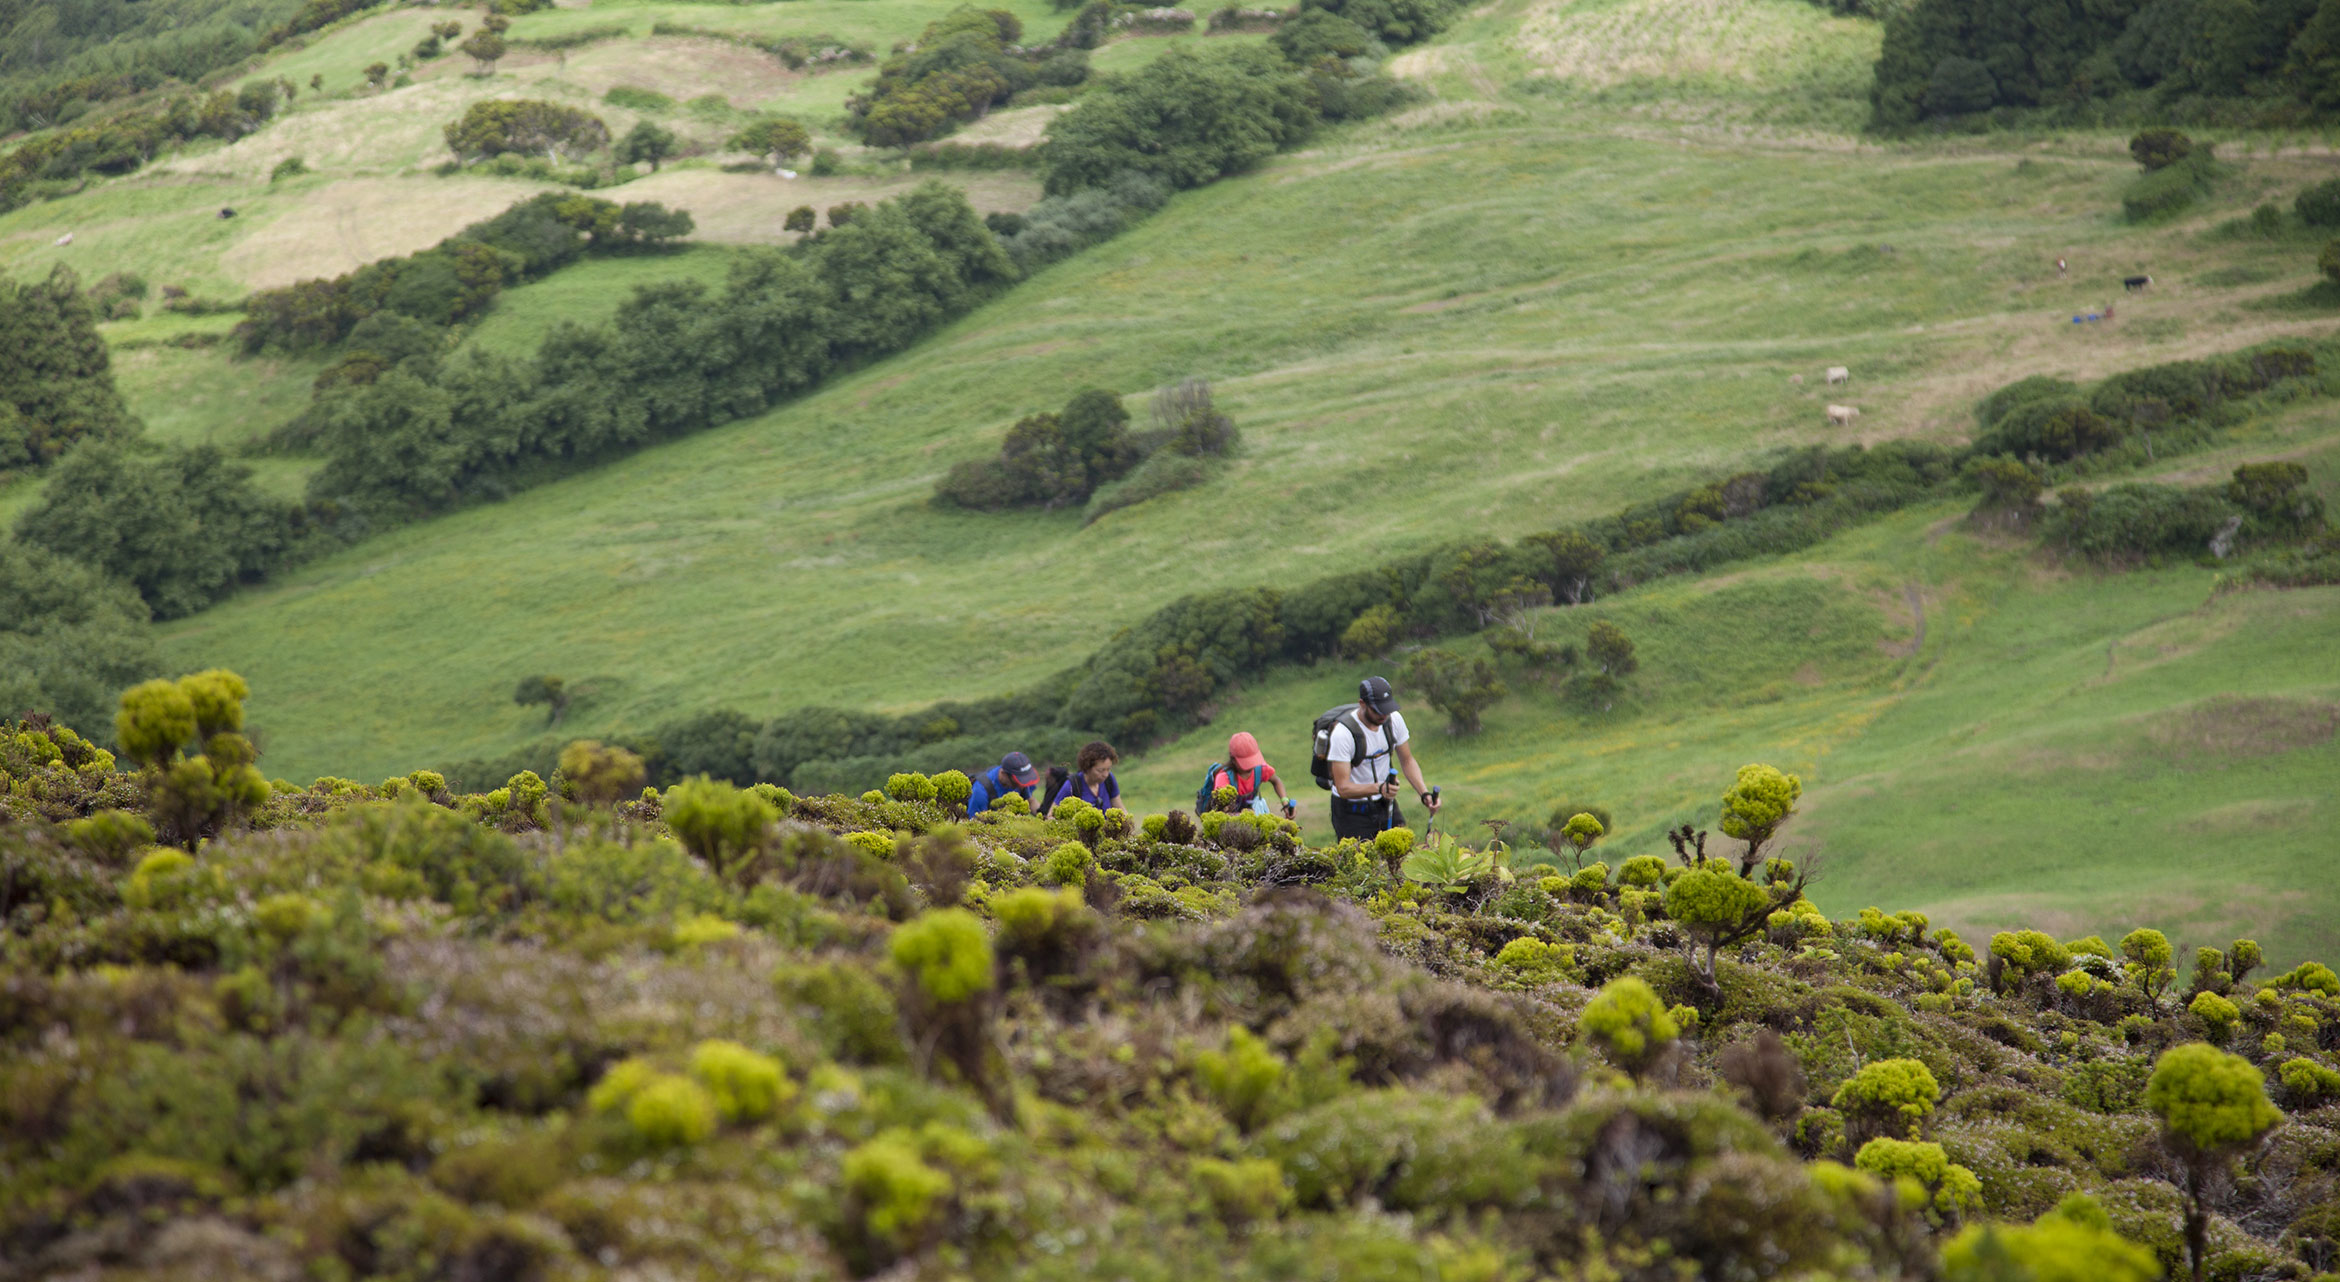 people trailrunning in the nature